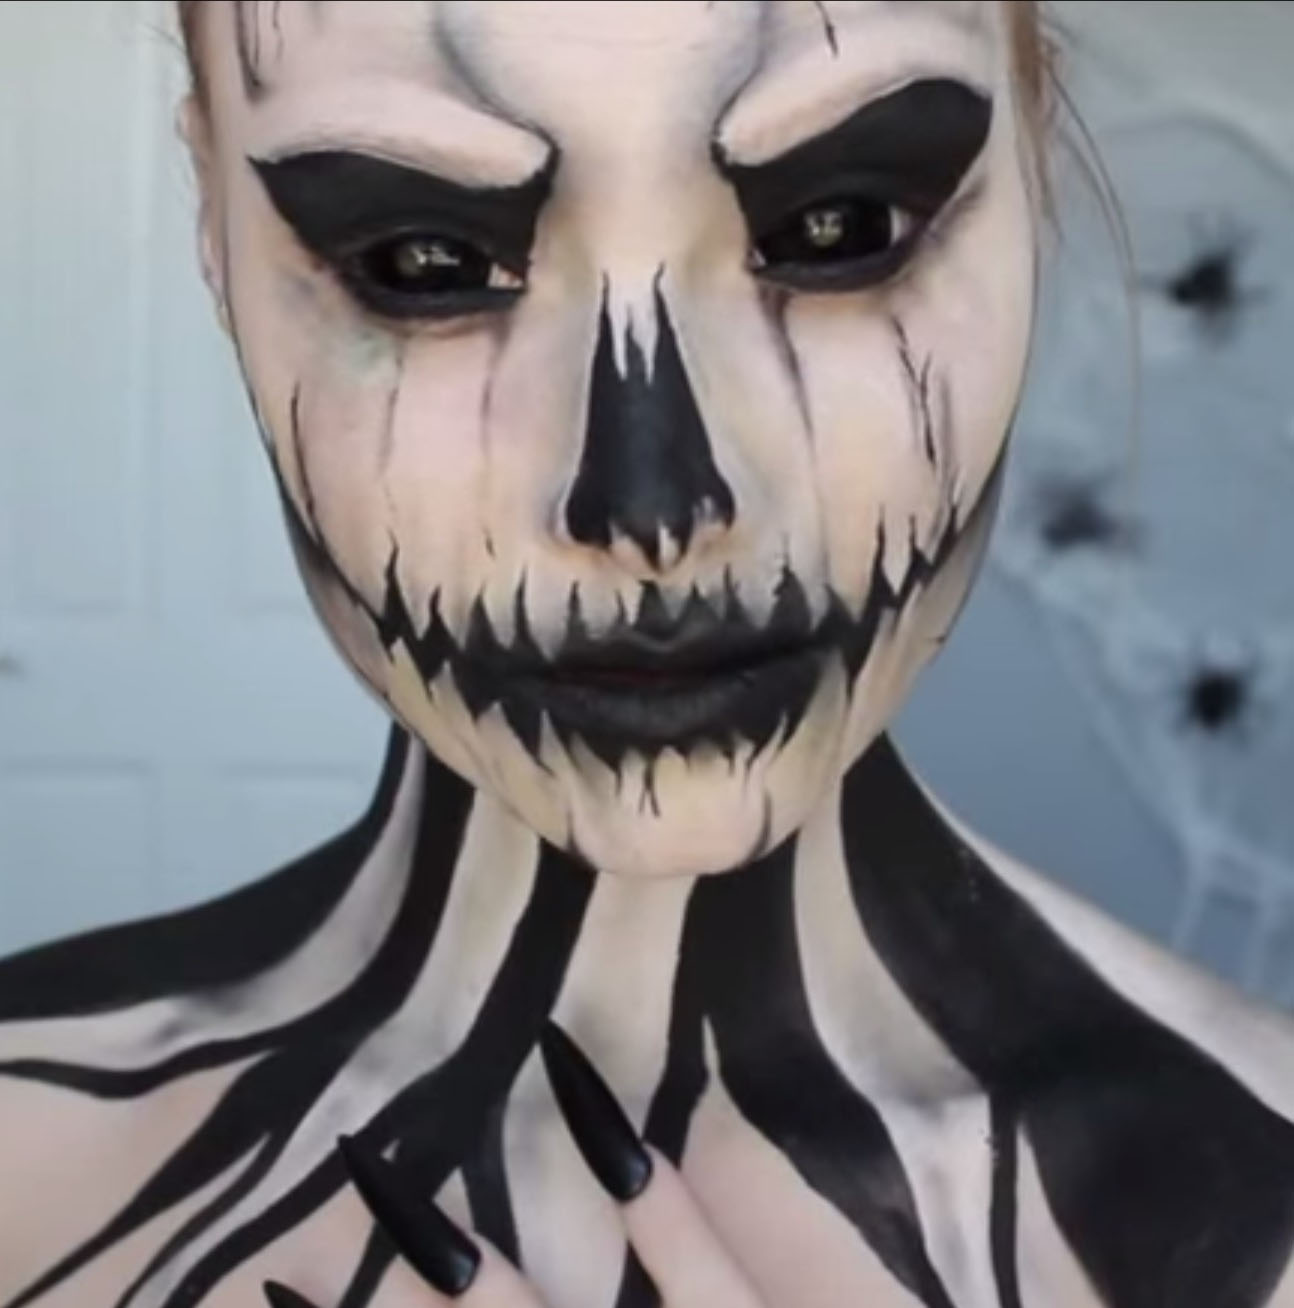 52 reasons halloween makeup has to be perfect - gallery | ebaum's world